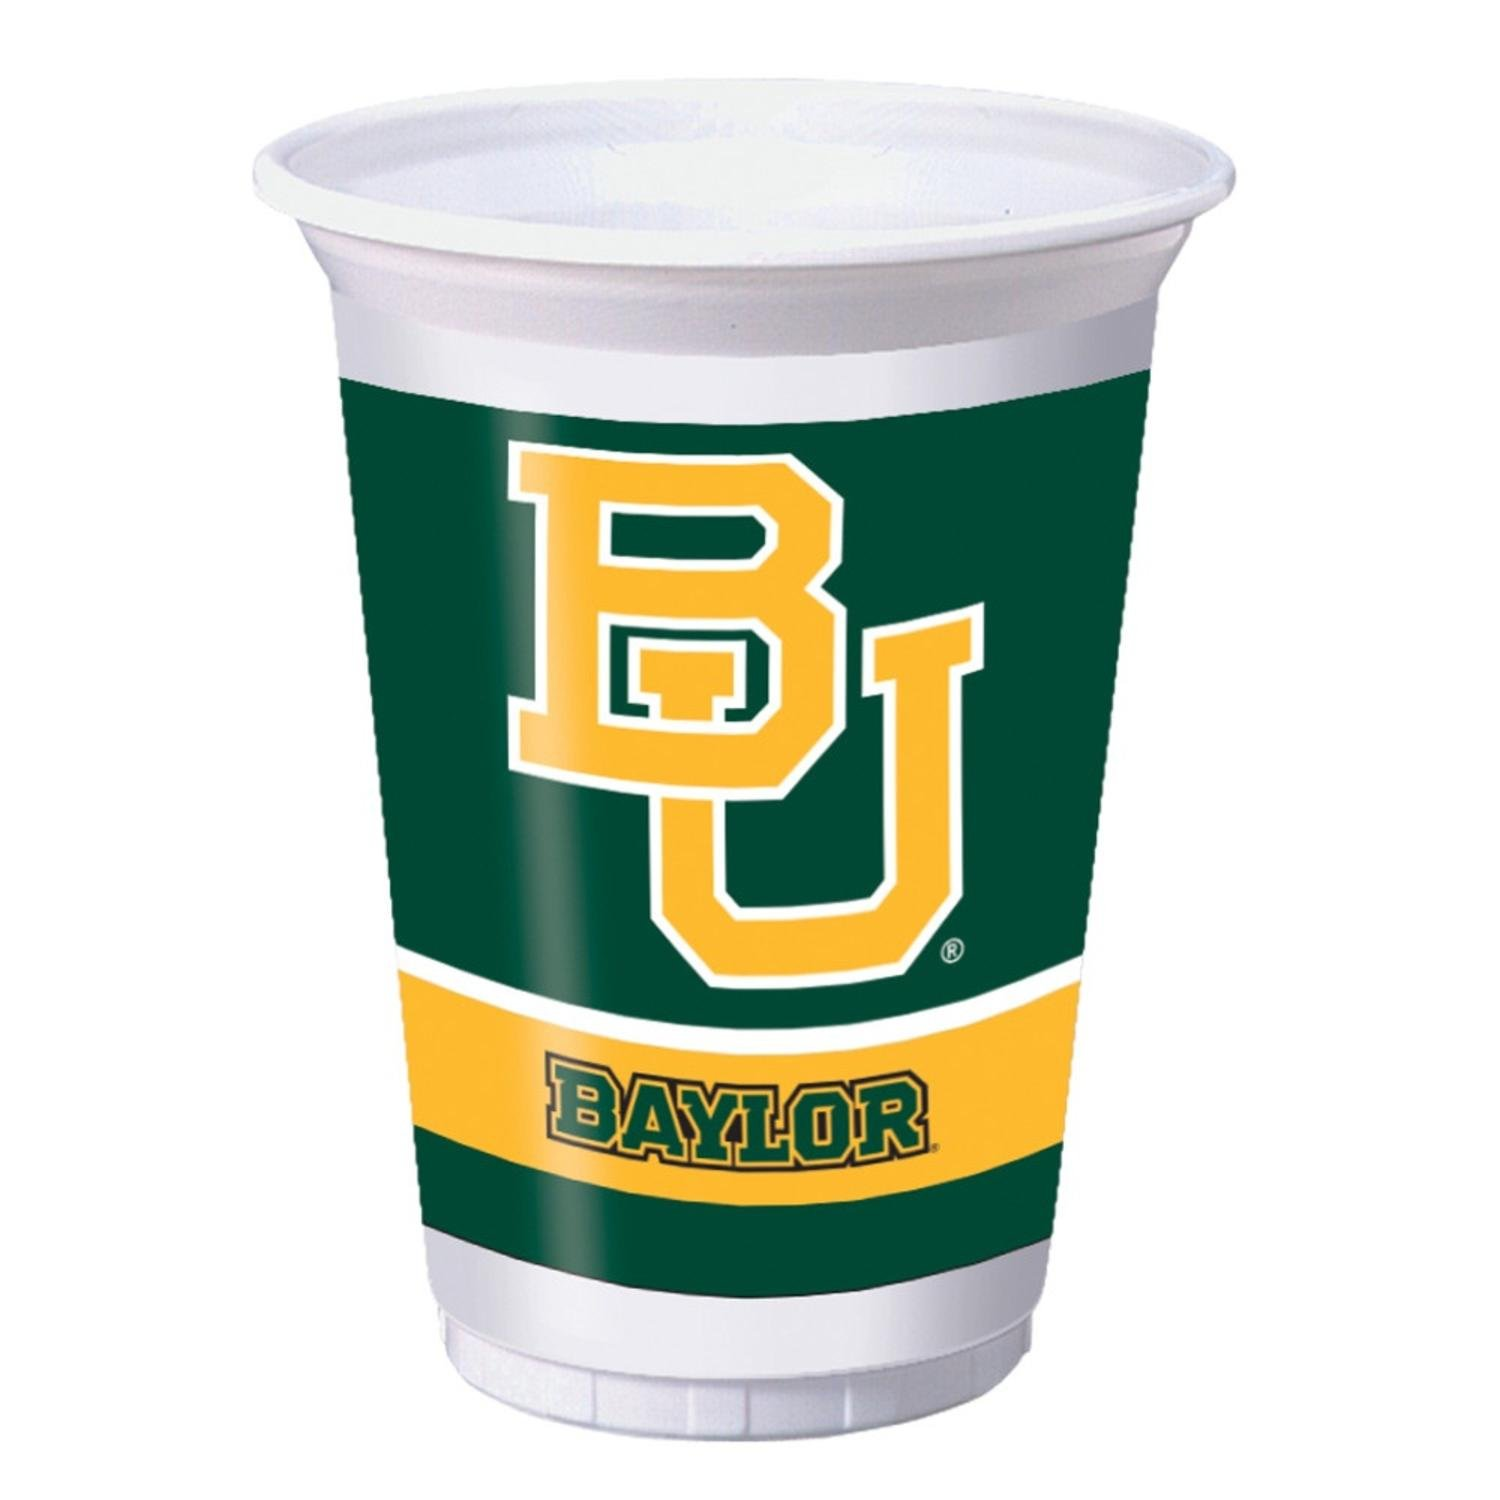 Club Pack of 96 NCAA Baylor University Disposable Plastic Drinking Party Tumbler Cups 20 oz. by Party Central (Image #1)